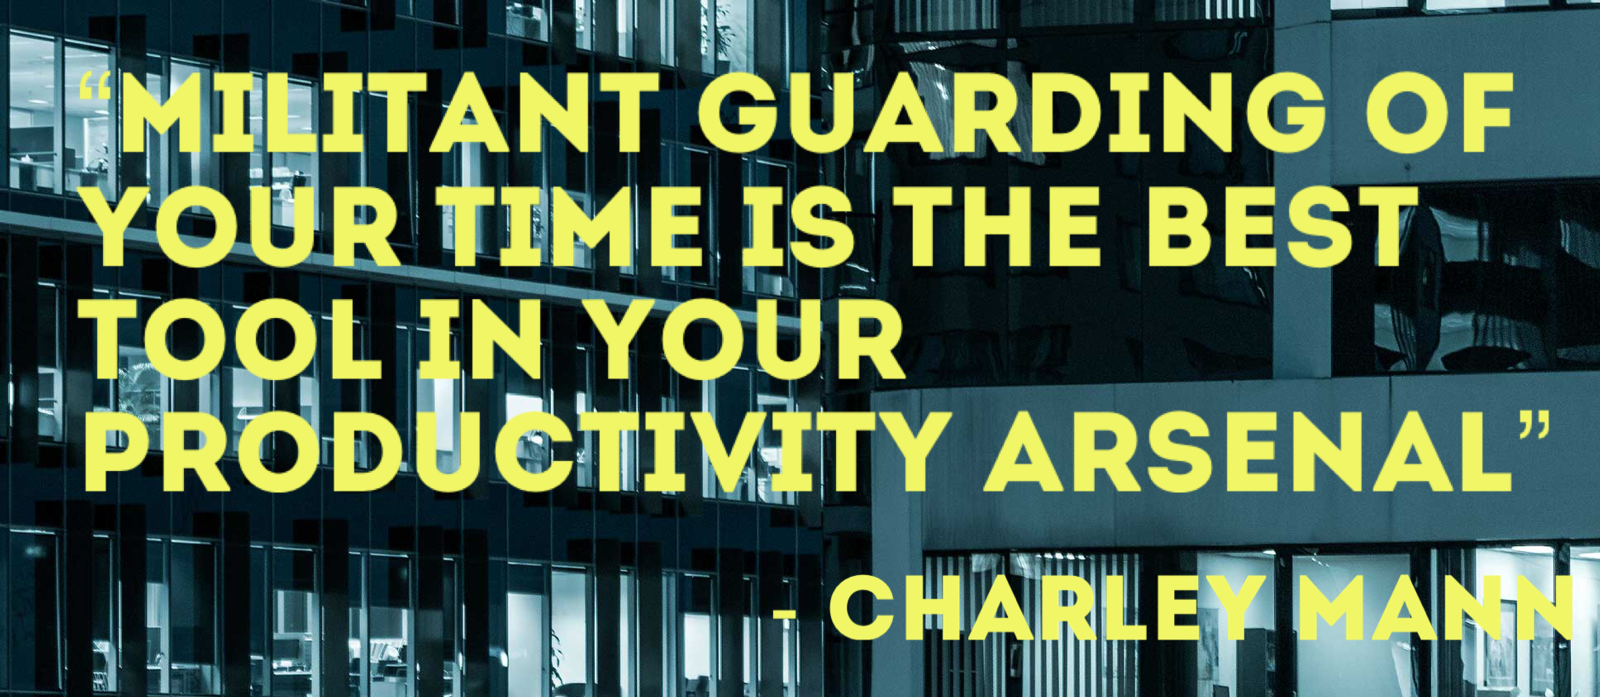 Militant guarding of your time is the best too in your productivity arsenal.